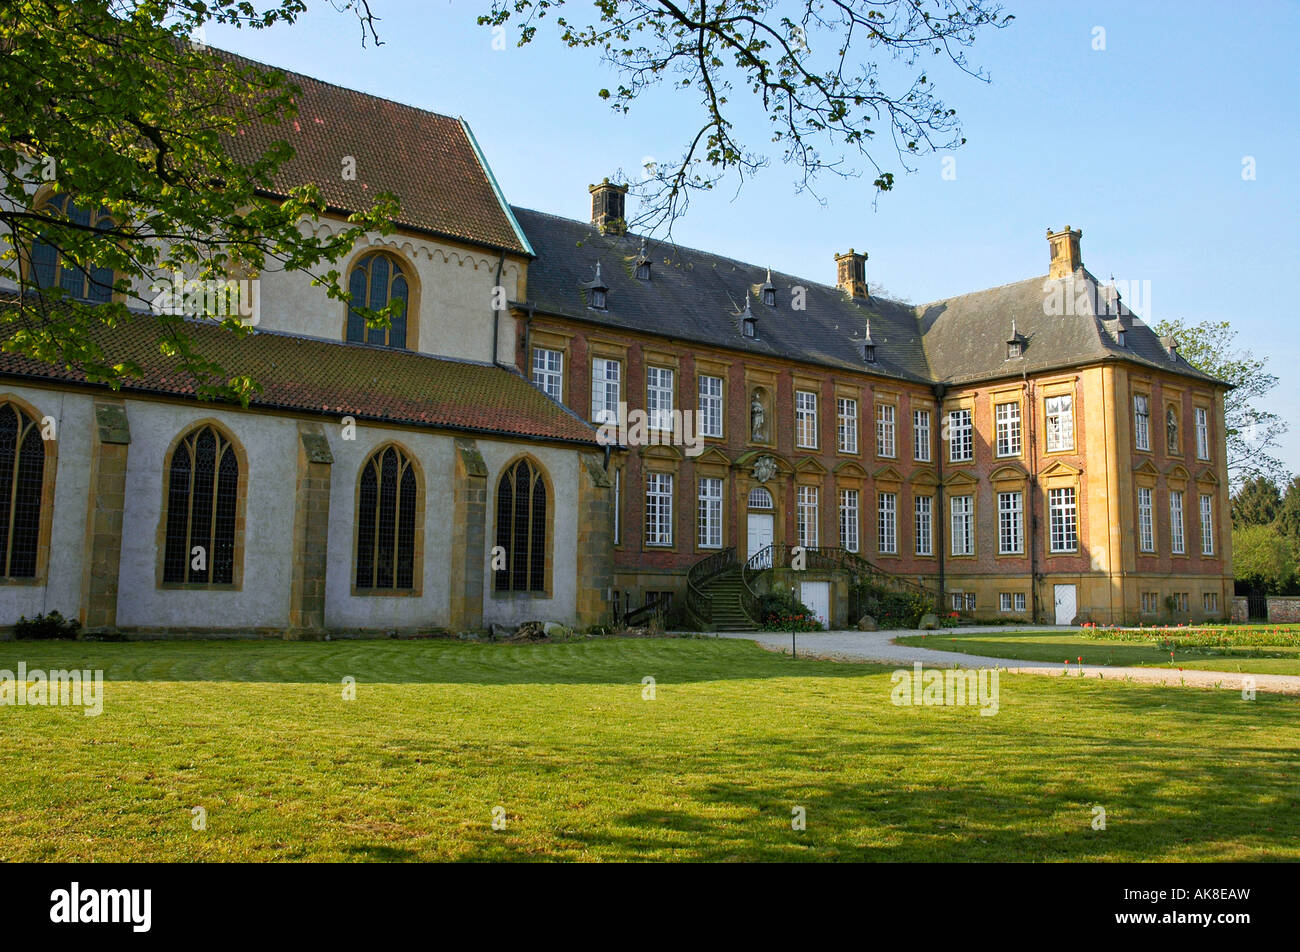 Monastery Marienfeld / Harsewinkel Stock Photo: 14919648